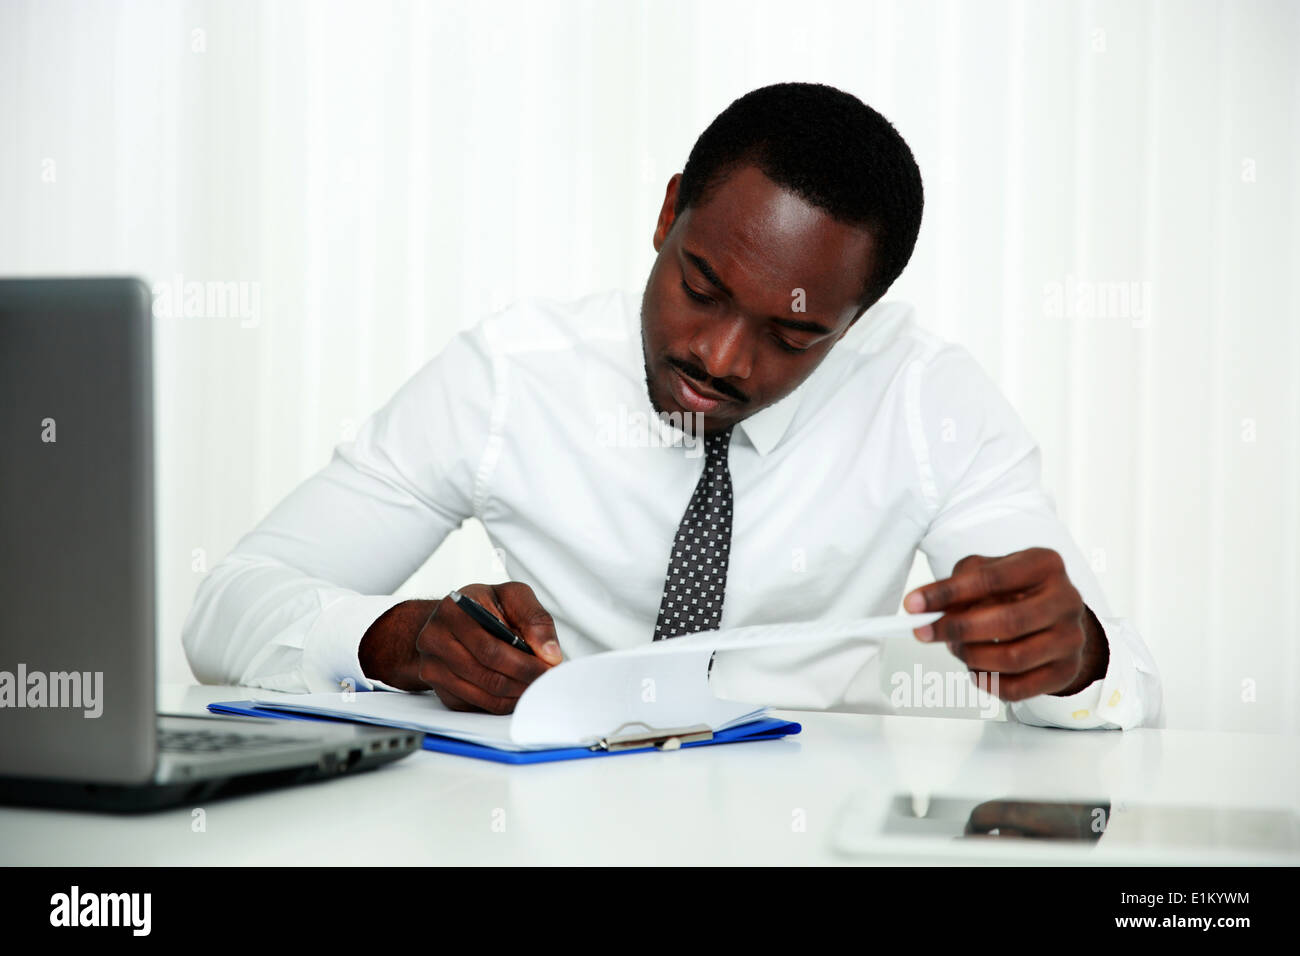 African man signing document in office - Stock Image